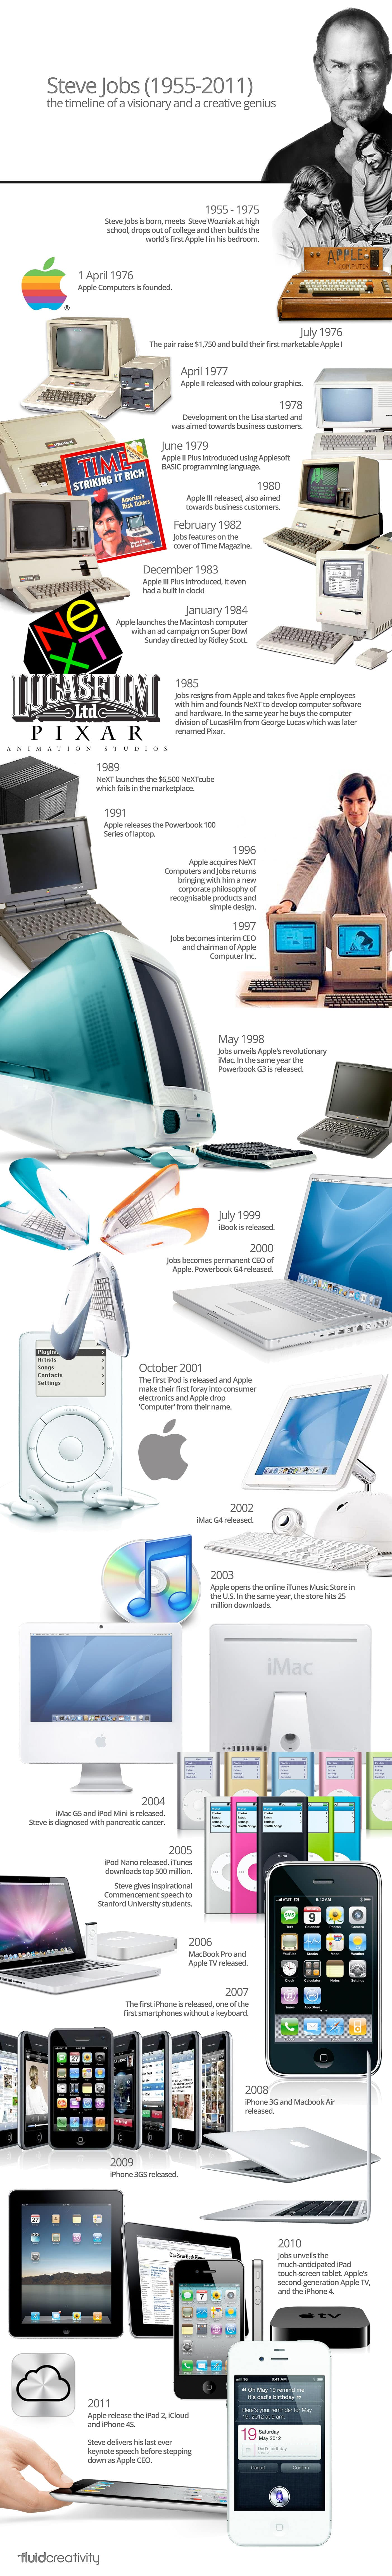 Steve Jobs Innovation Timeline Infographic